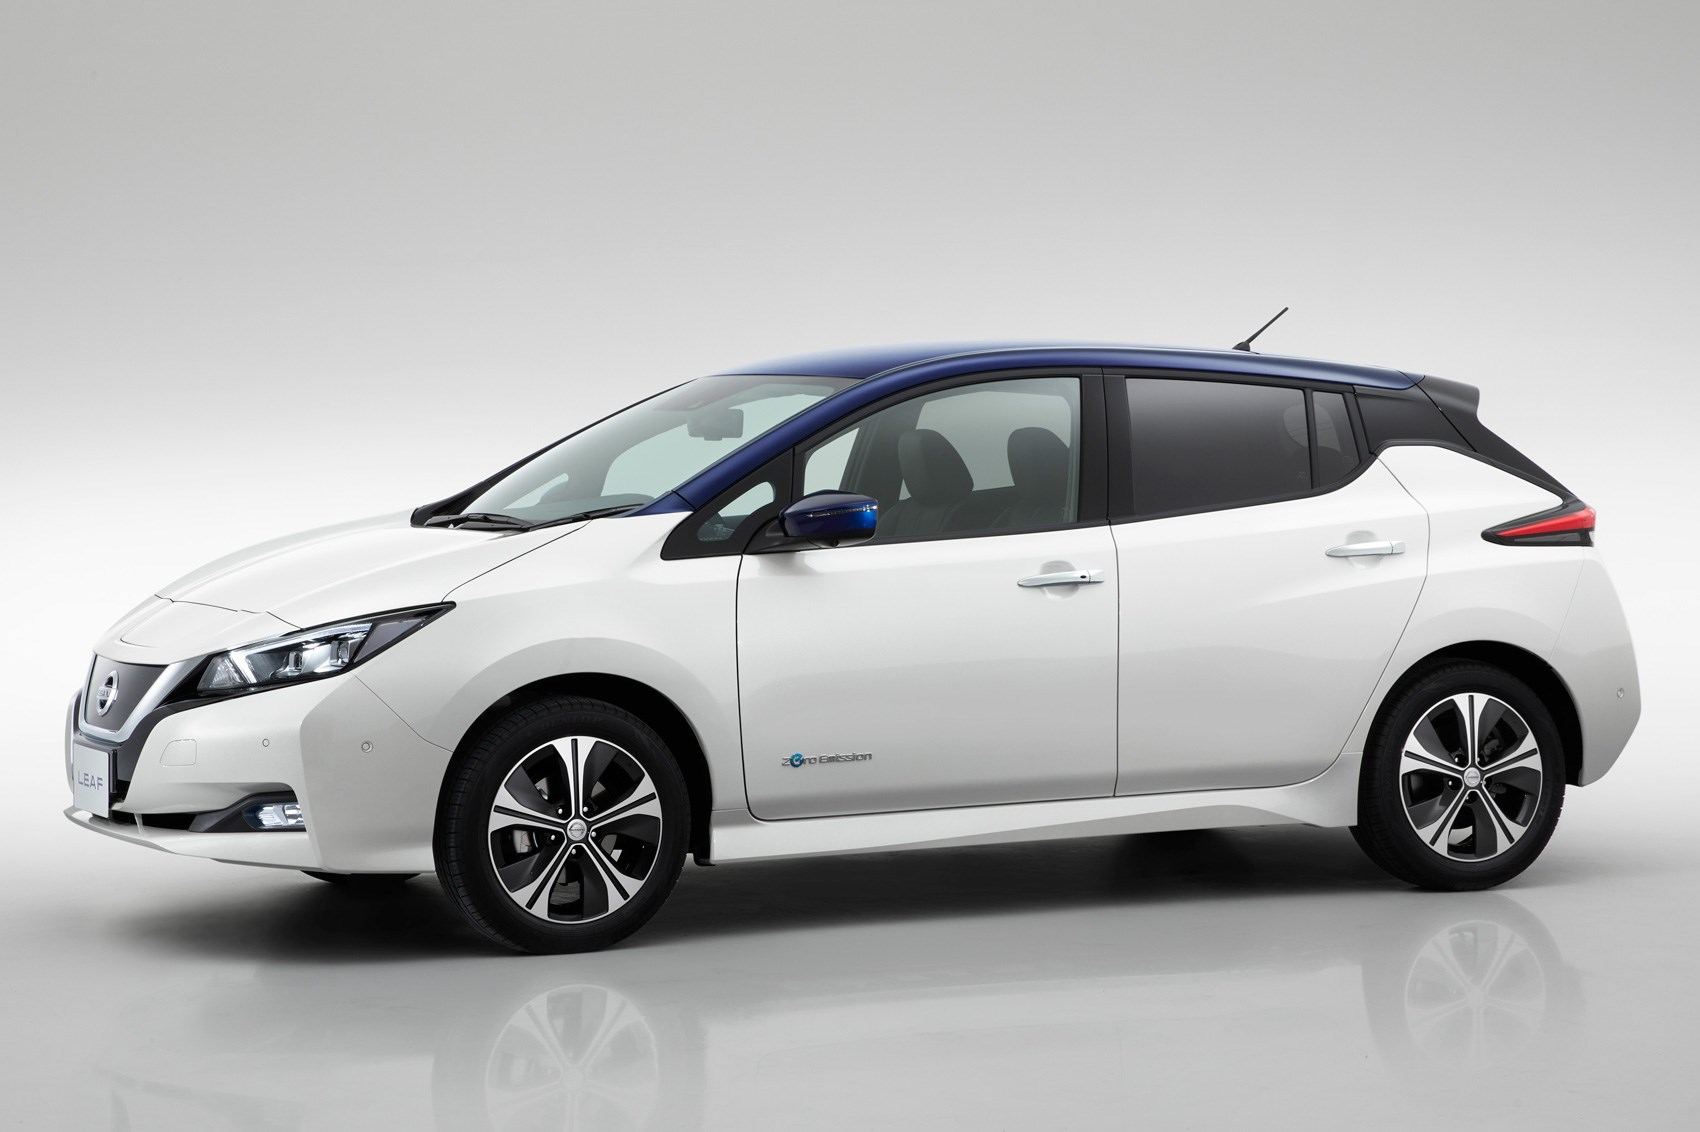 New Nissan Leaf Release Date Uk >> The new Leaf Nismo is finally here | CAR Magazine